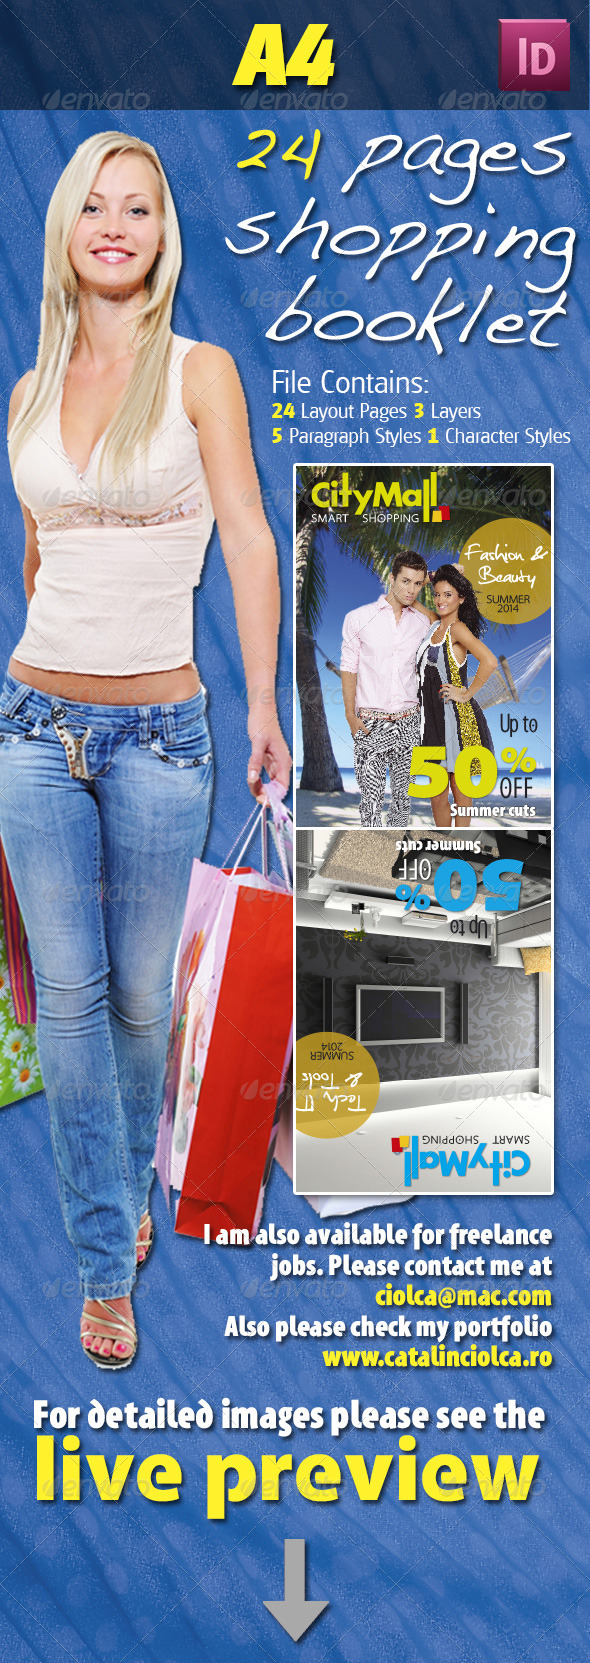 GraphicRiver 24 Pages Shopping Booklet 4623471